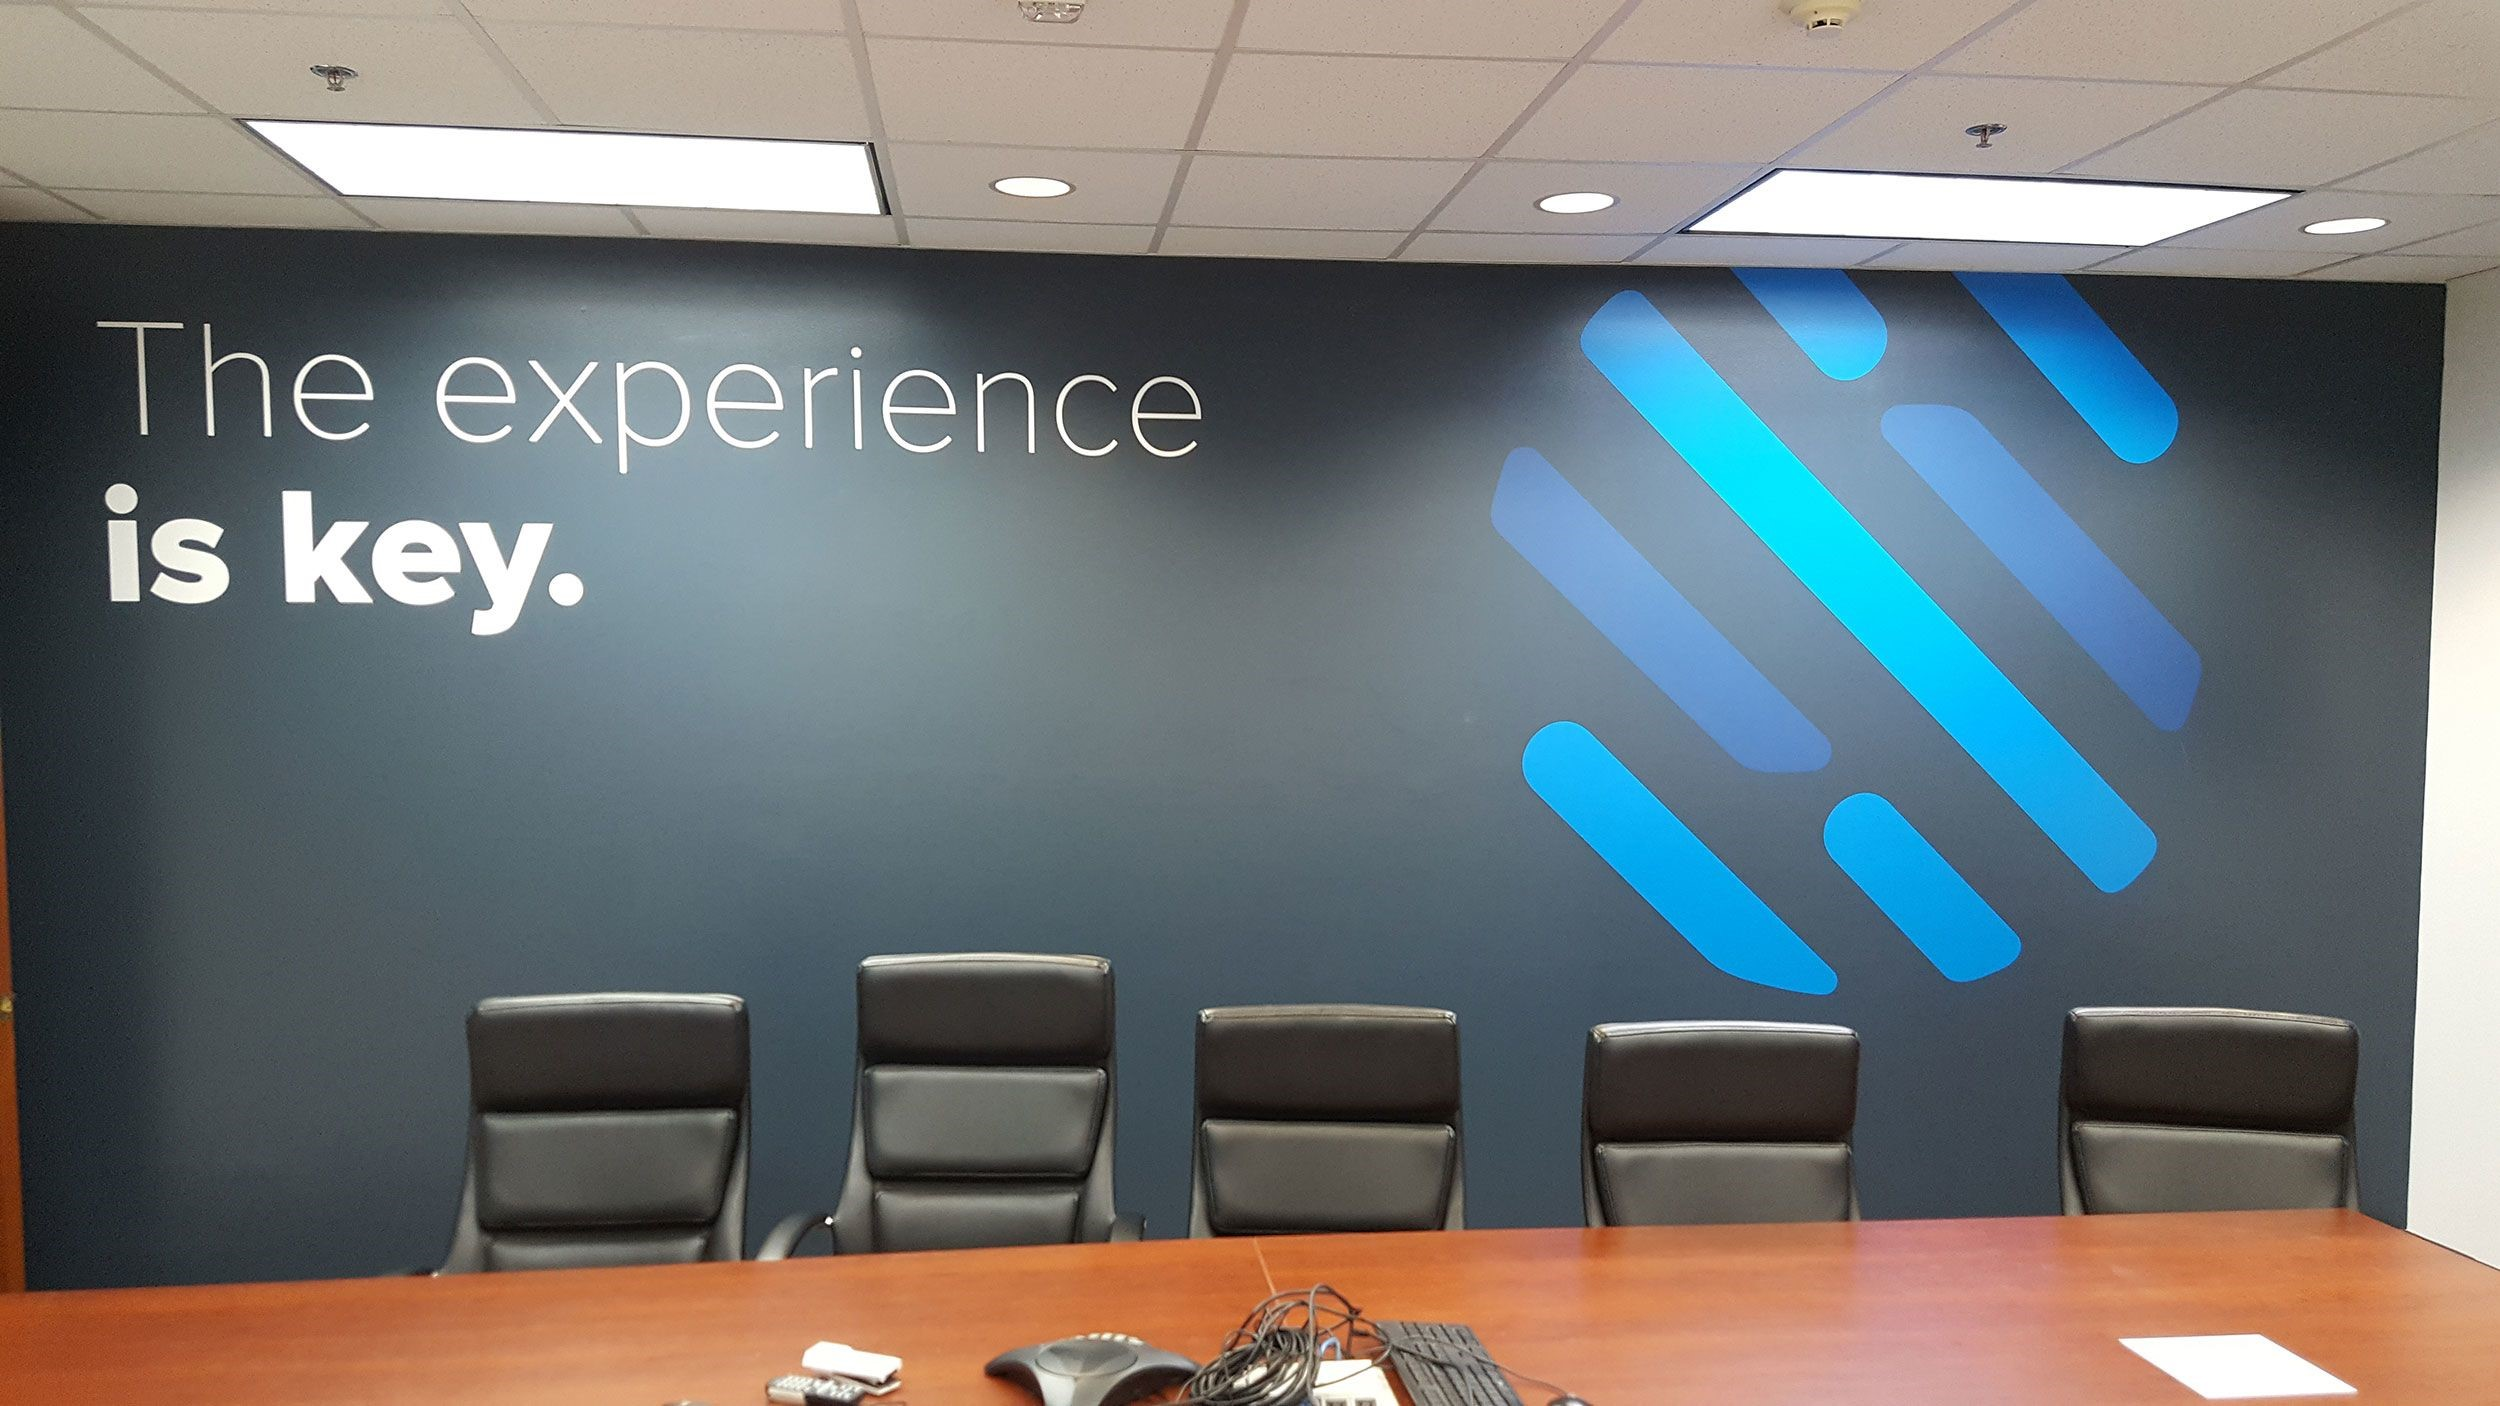 Wall Graphics, Murals, Wallpaper | Interior Signage & Indoor Signs | Professional Services